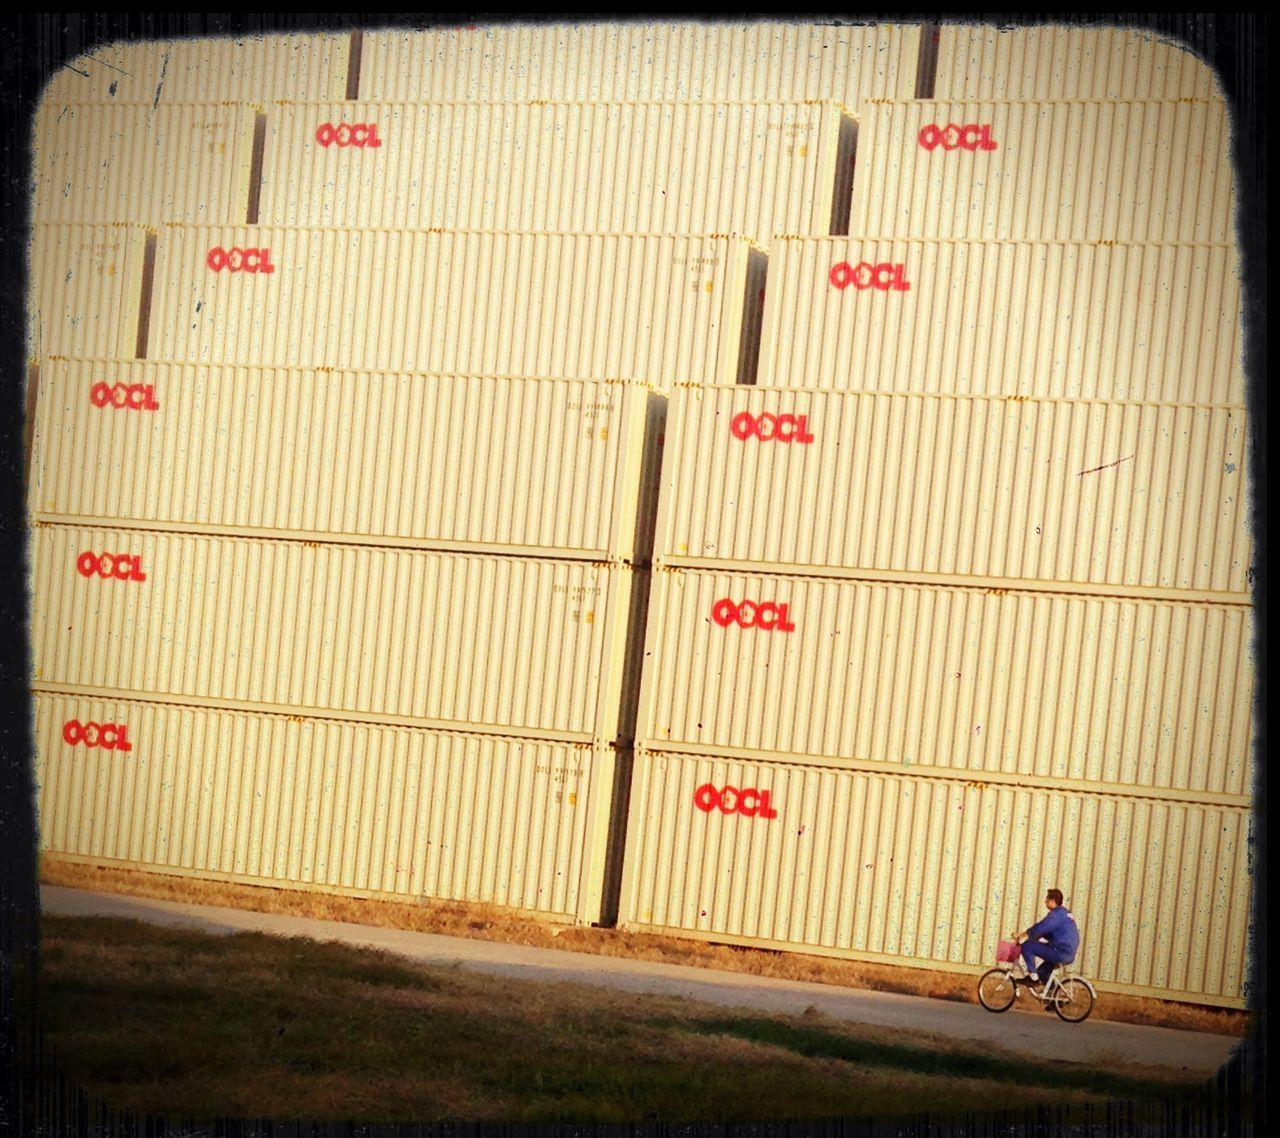 A man rides his bike in front of a mountain of shipping containers stacked near the Shanghai Port at Taicang.